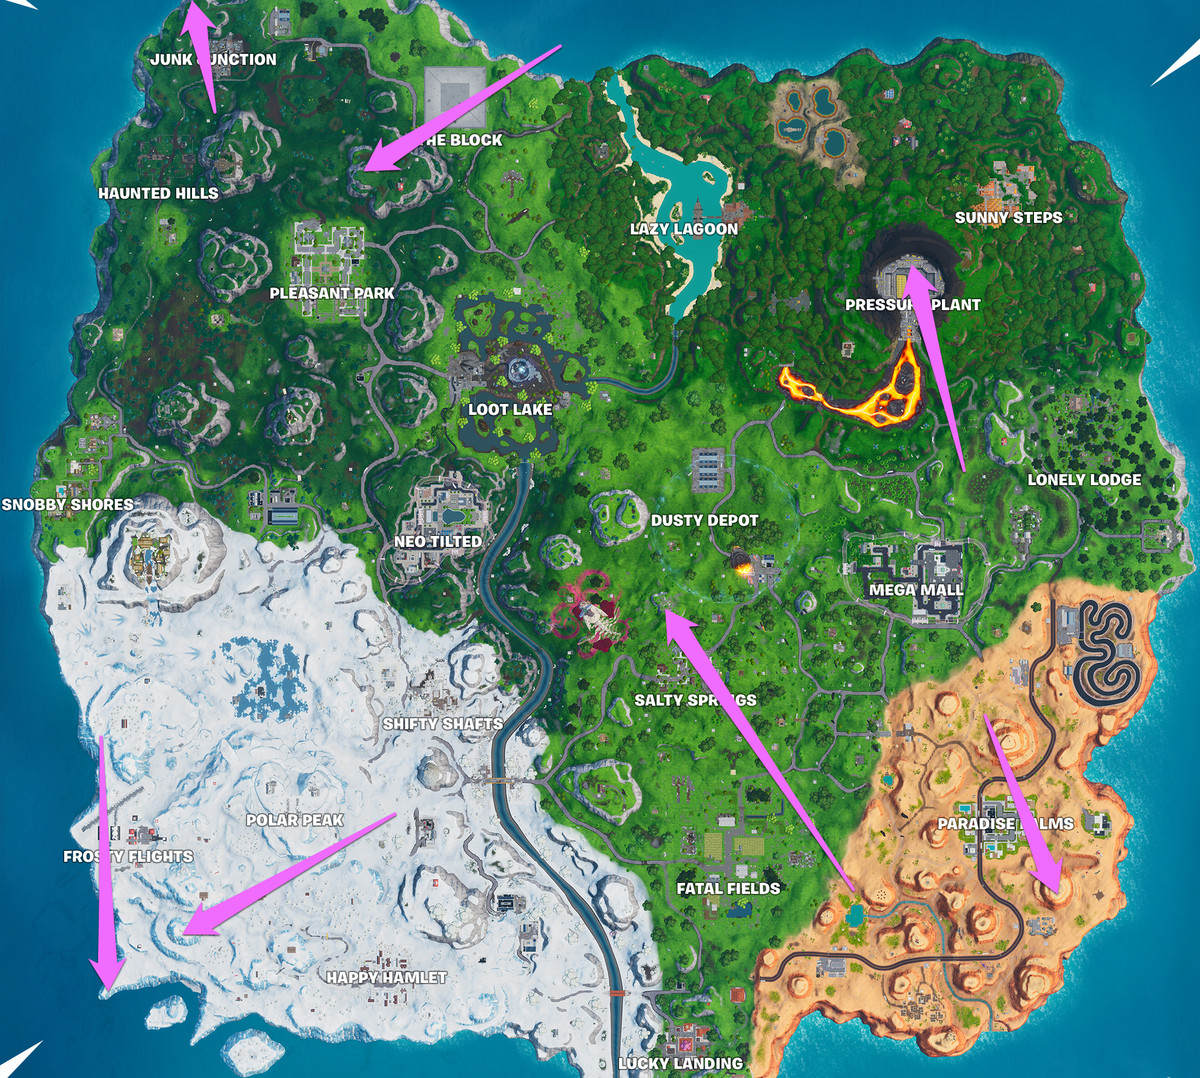 All of the no dancing sign locations marked on the Fortnite map